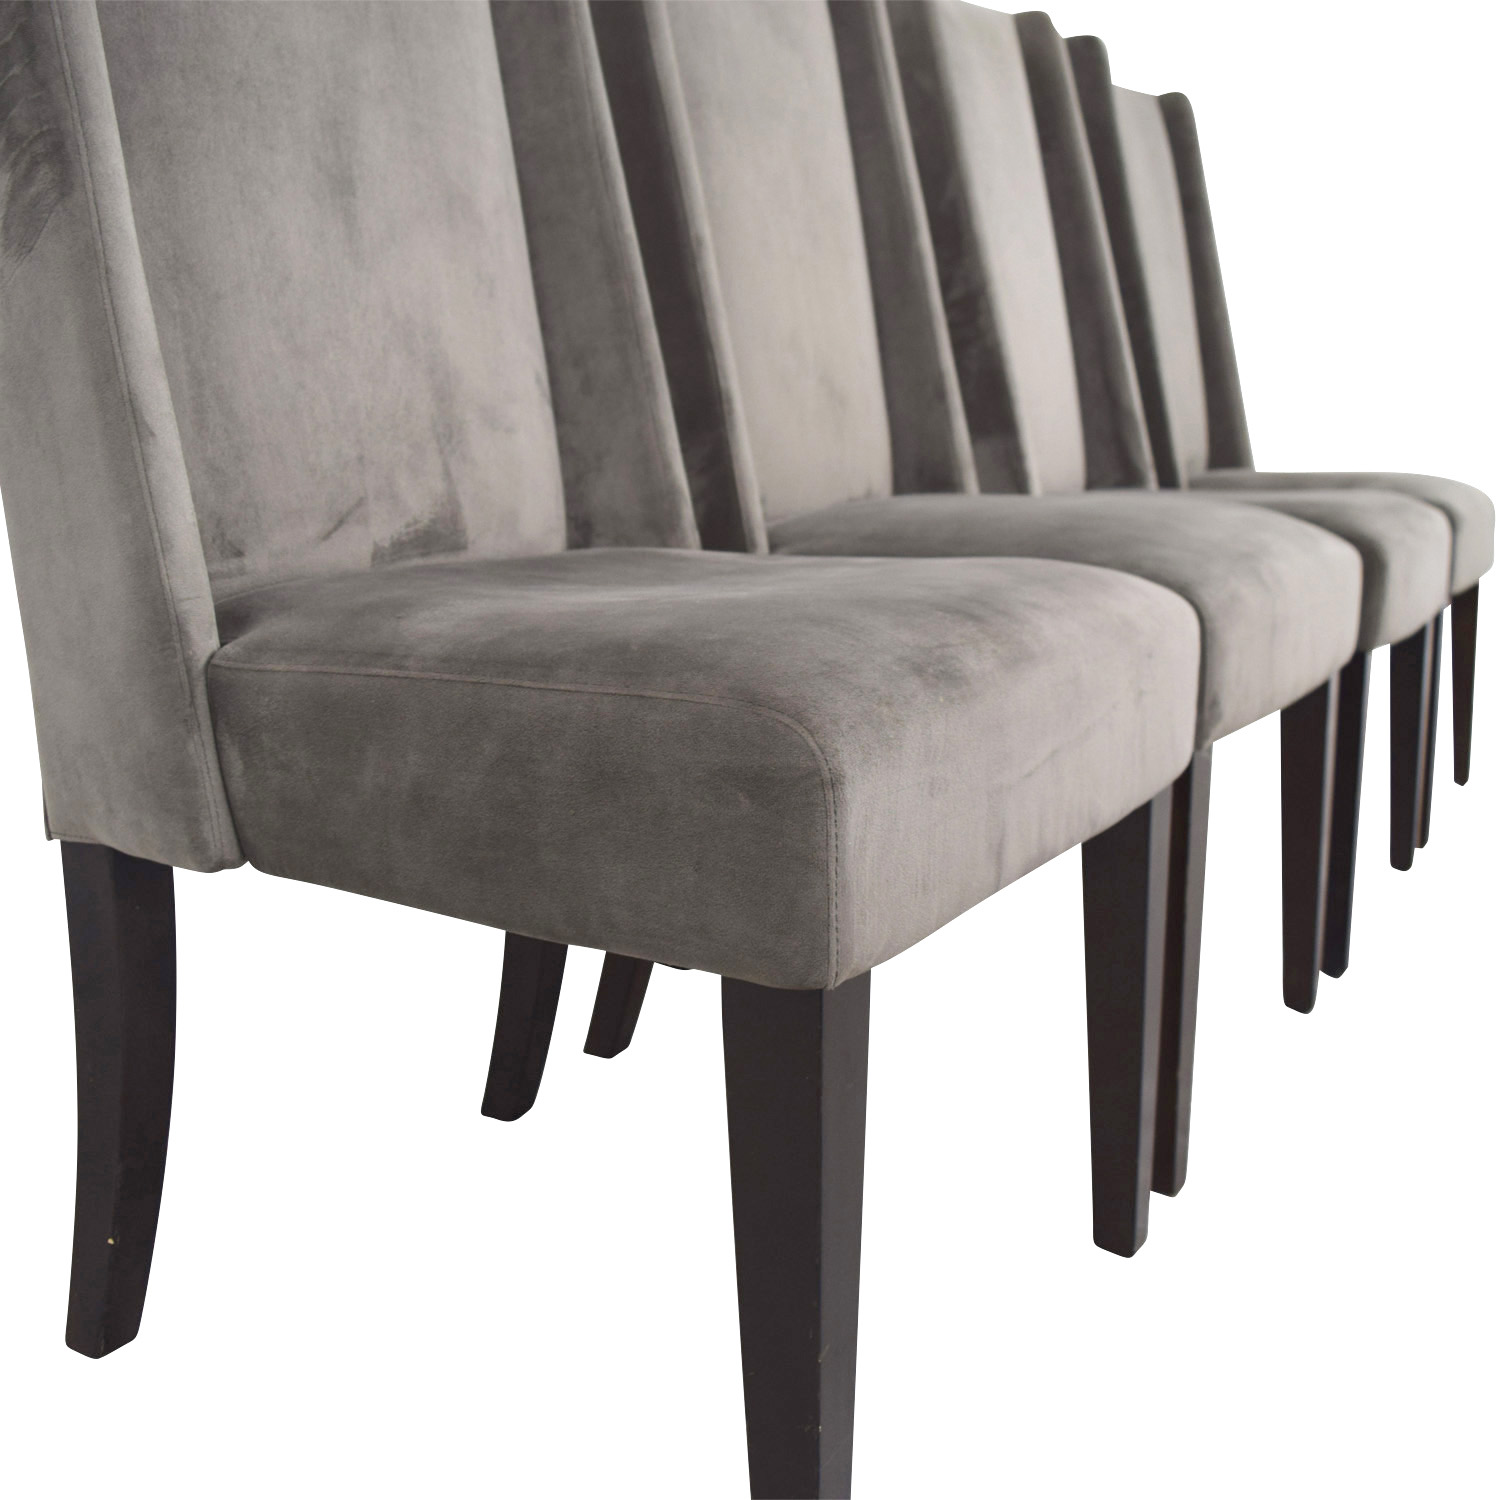 82 Off West Elm West Elm Velvet Dining Chairs Chairs